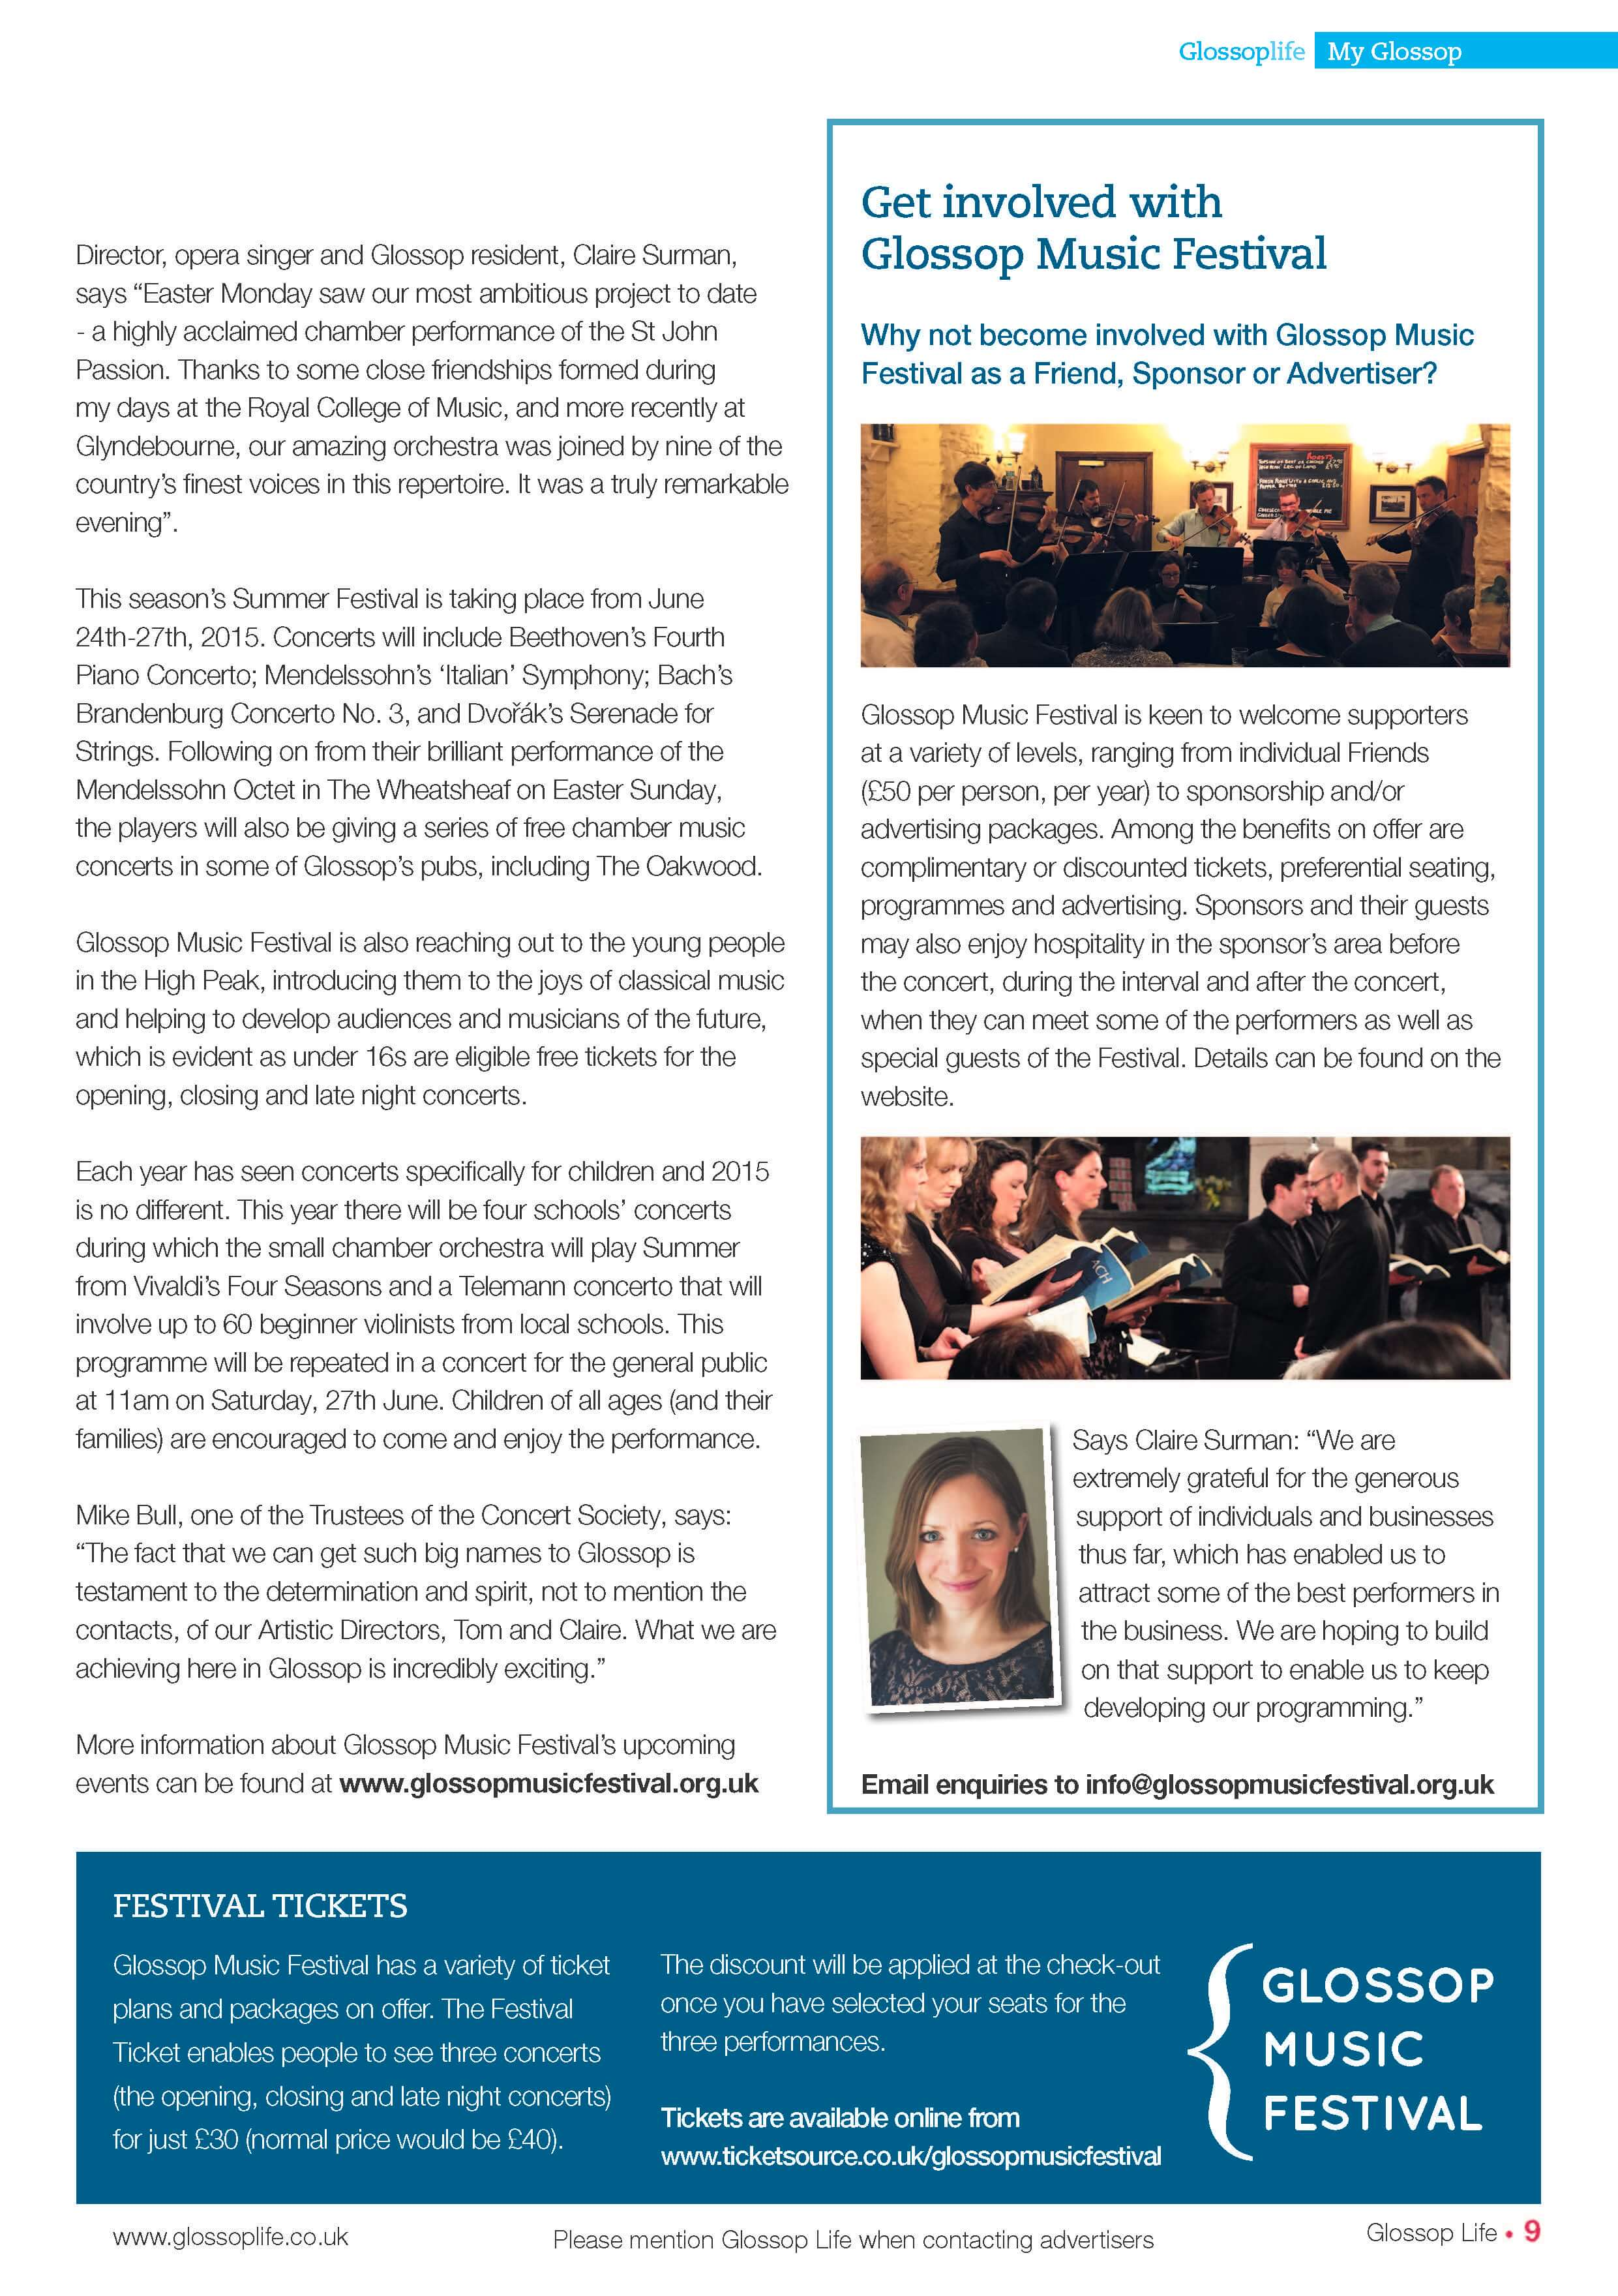 Glossop-Life-music-festival-article-spring-2015_Page_2